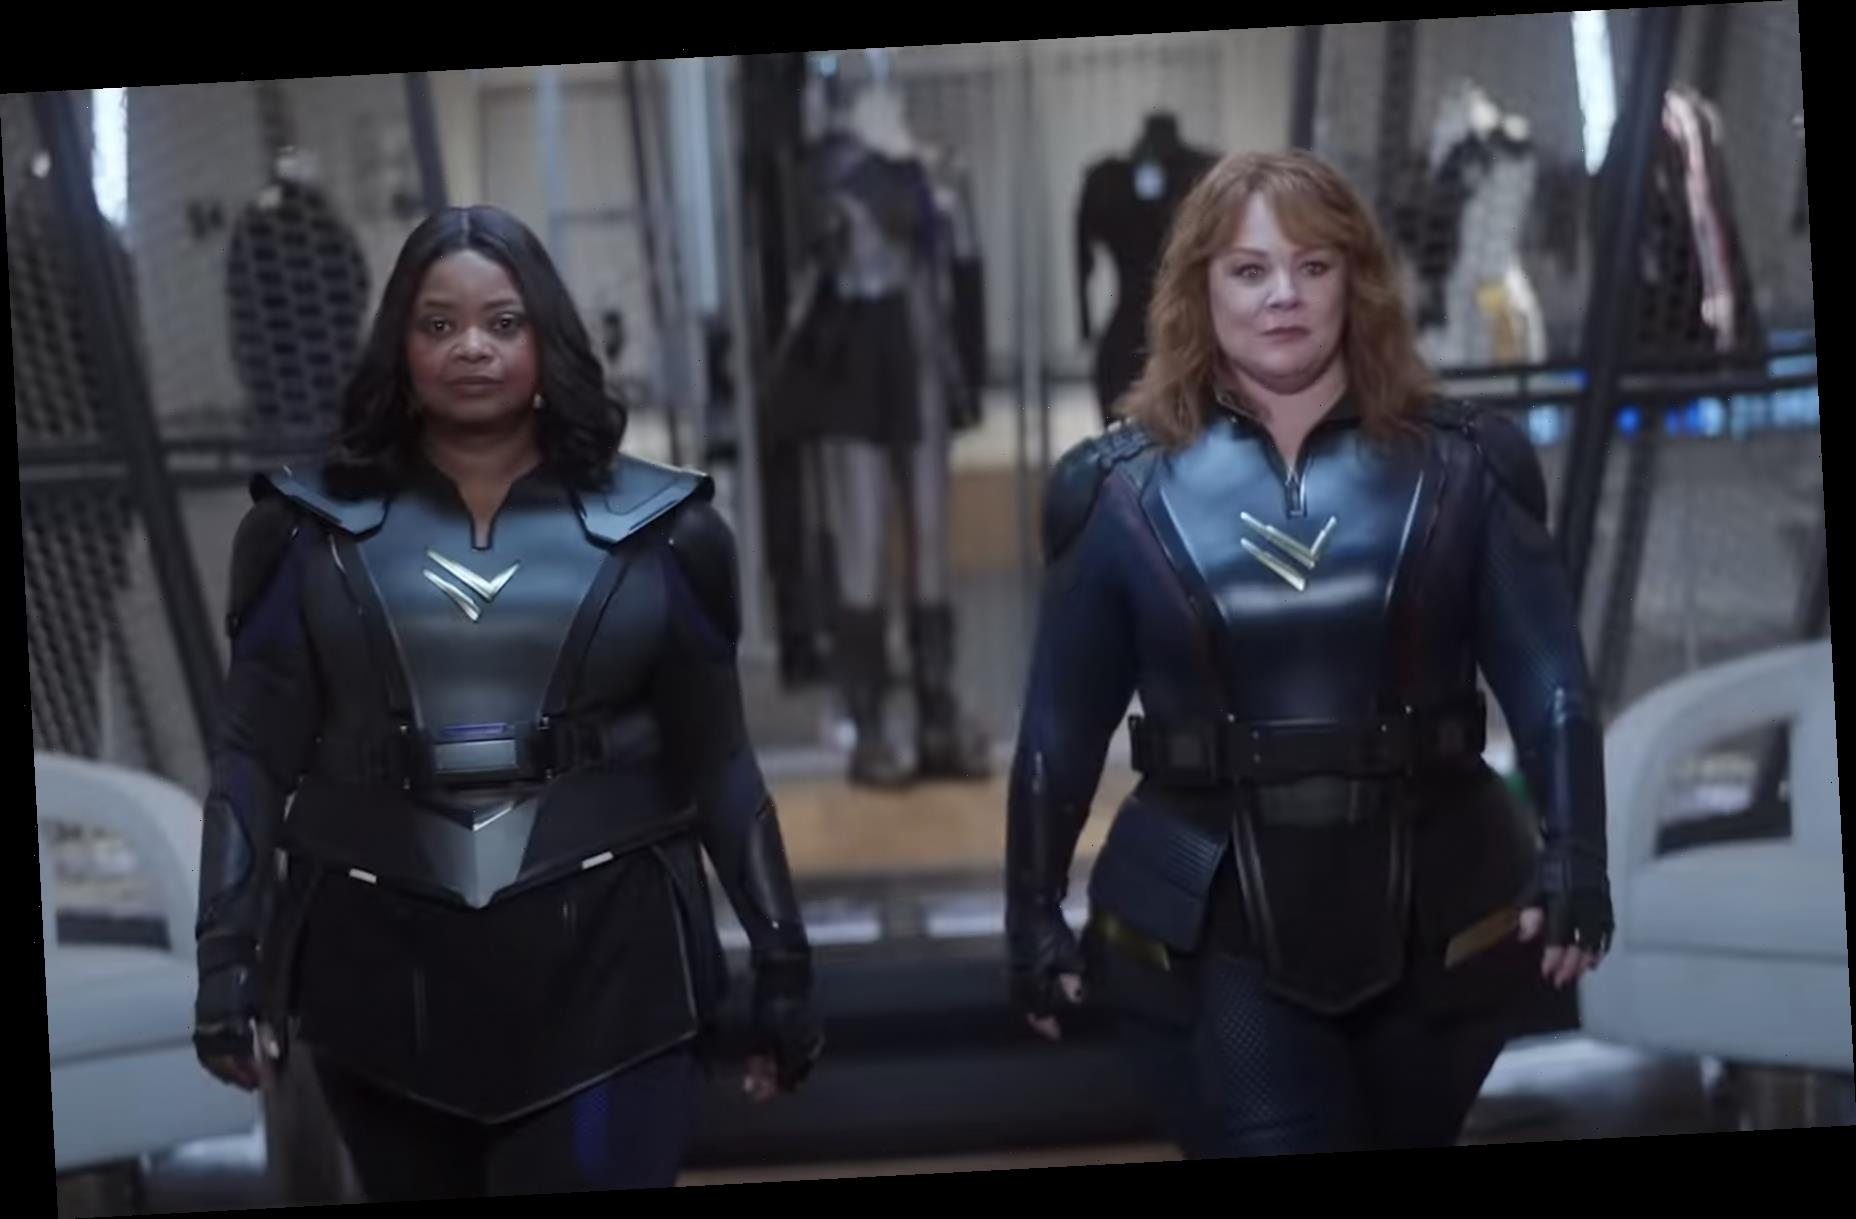 'Thunder Force' Trailer: Melissa McCarthy, Octavia Spencer Become Superheroes